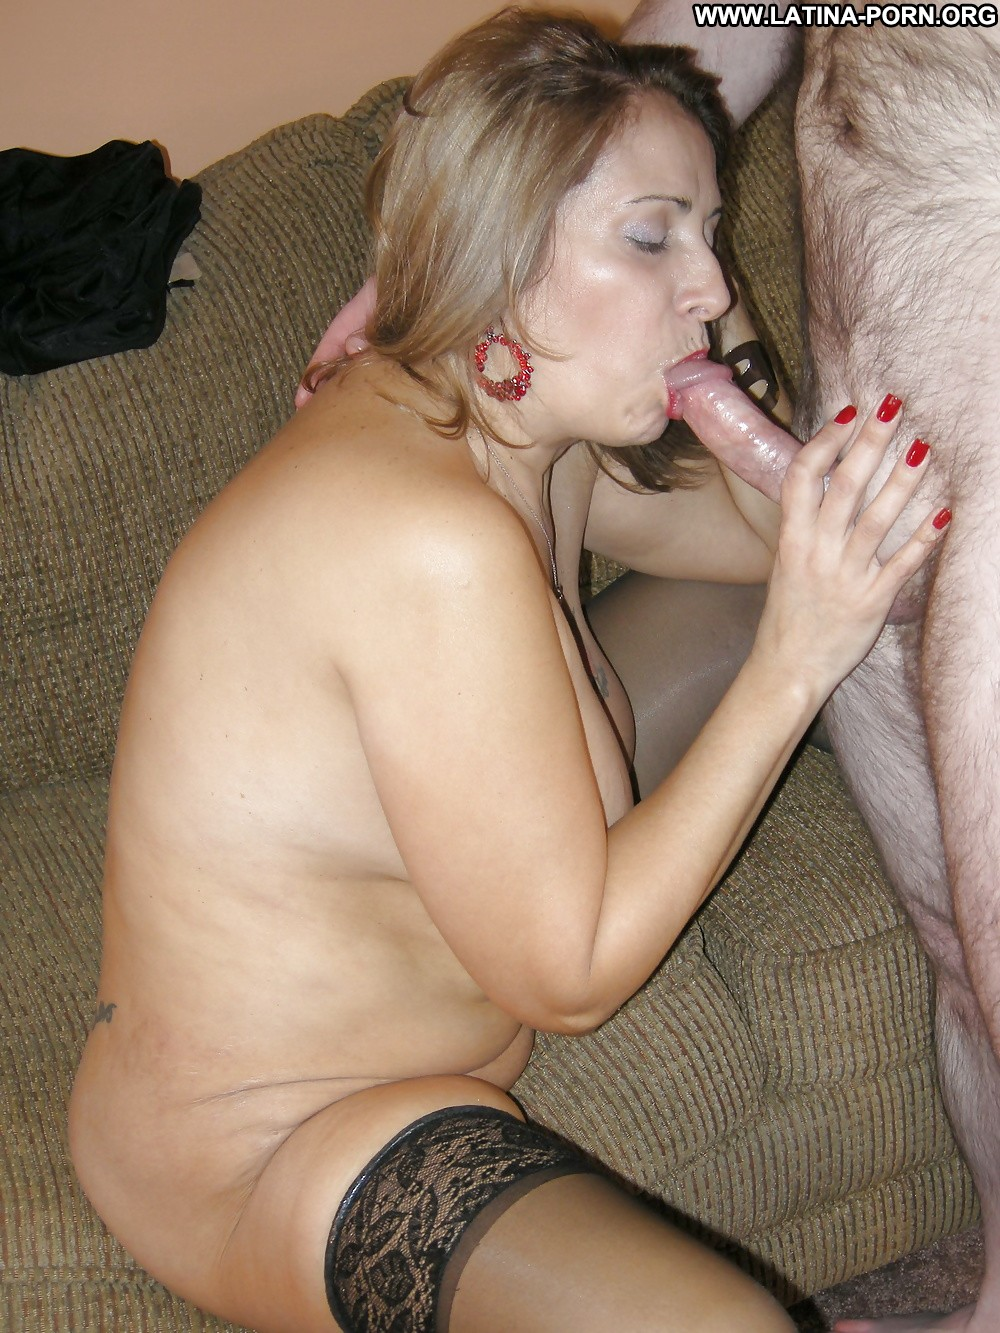 image Latina milf sandie marquez is swallowing a stiff cock